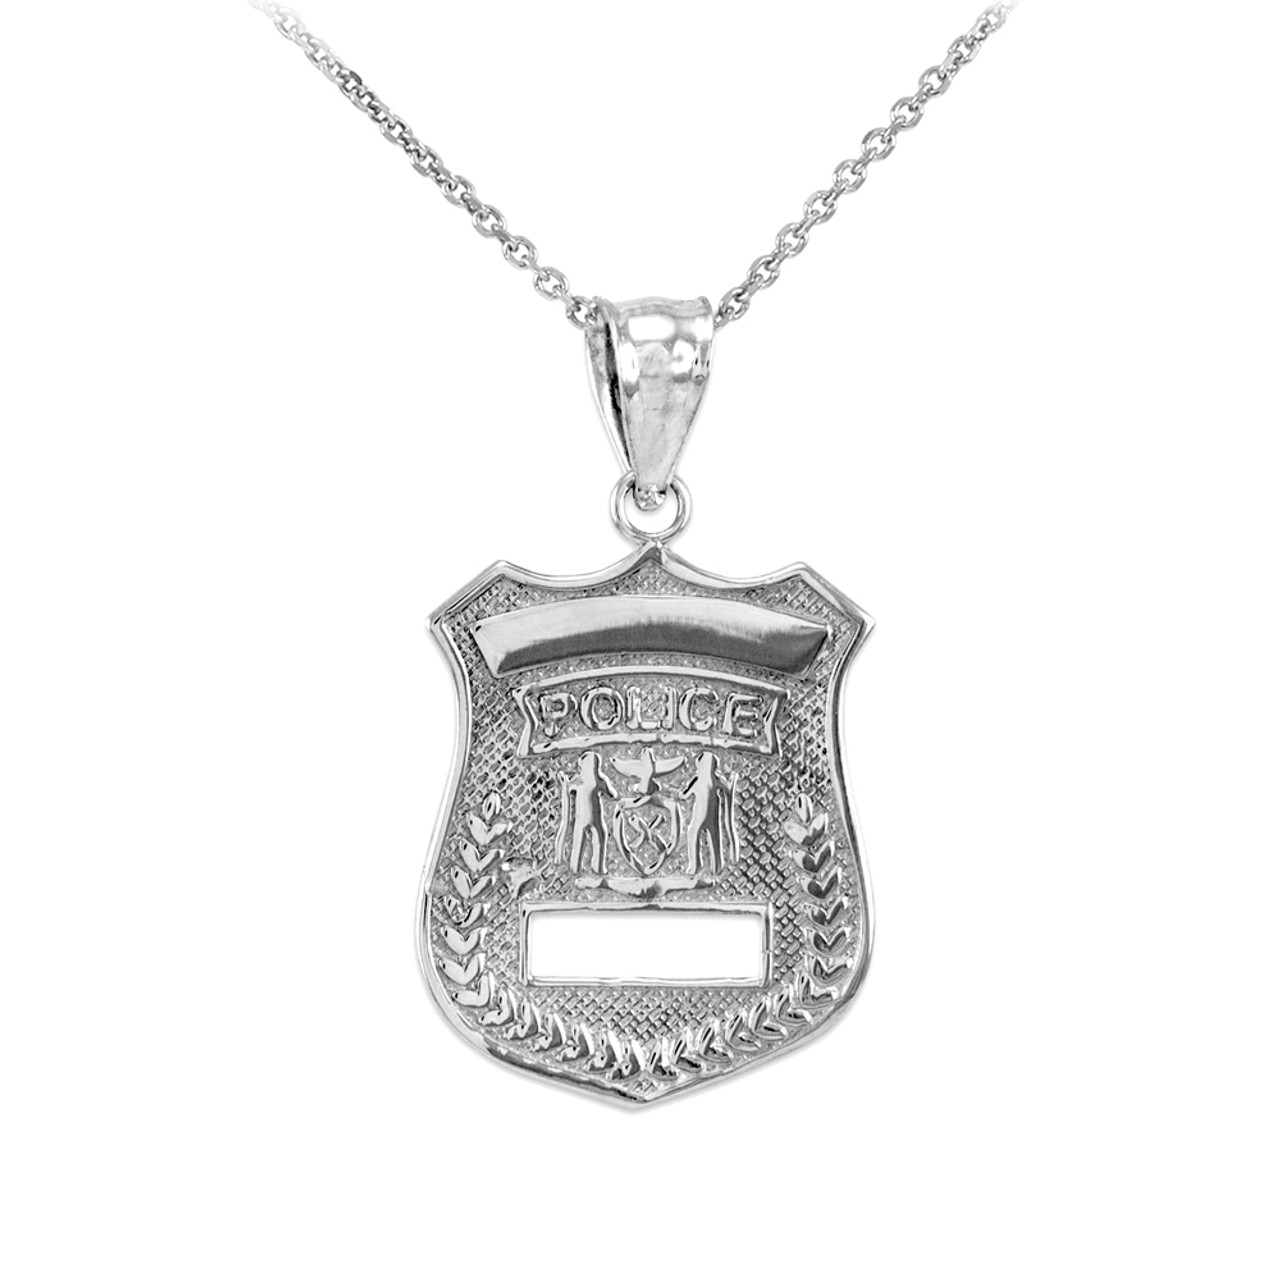 Silver police badge charm pendant sterling silver police badge charm pendant necklace mozeypictures Choice Image